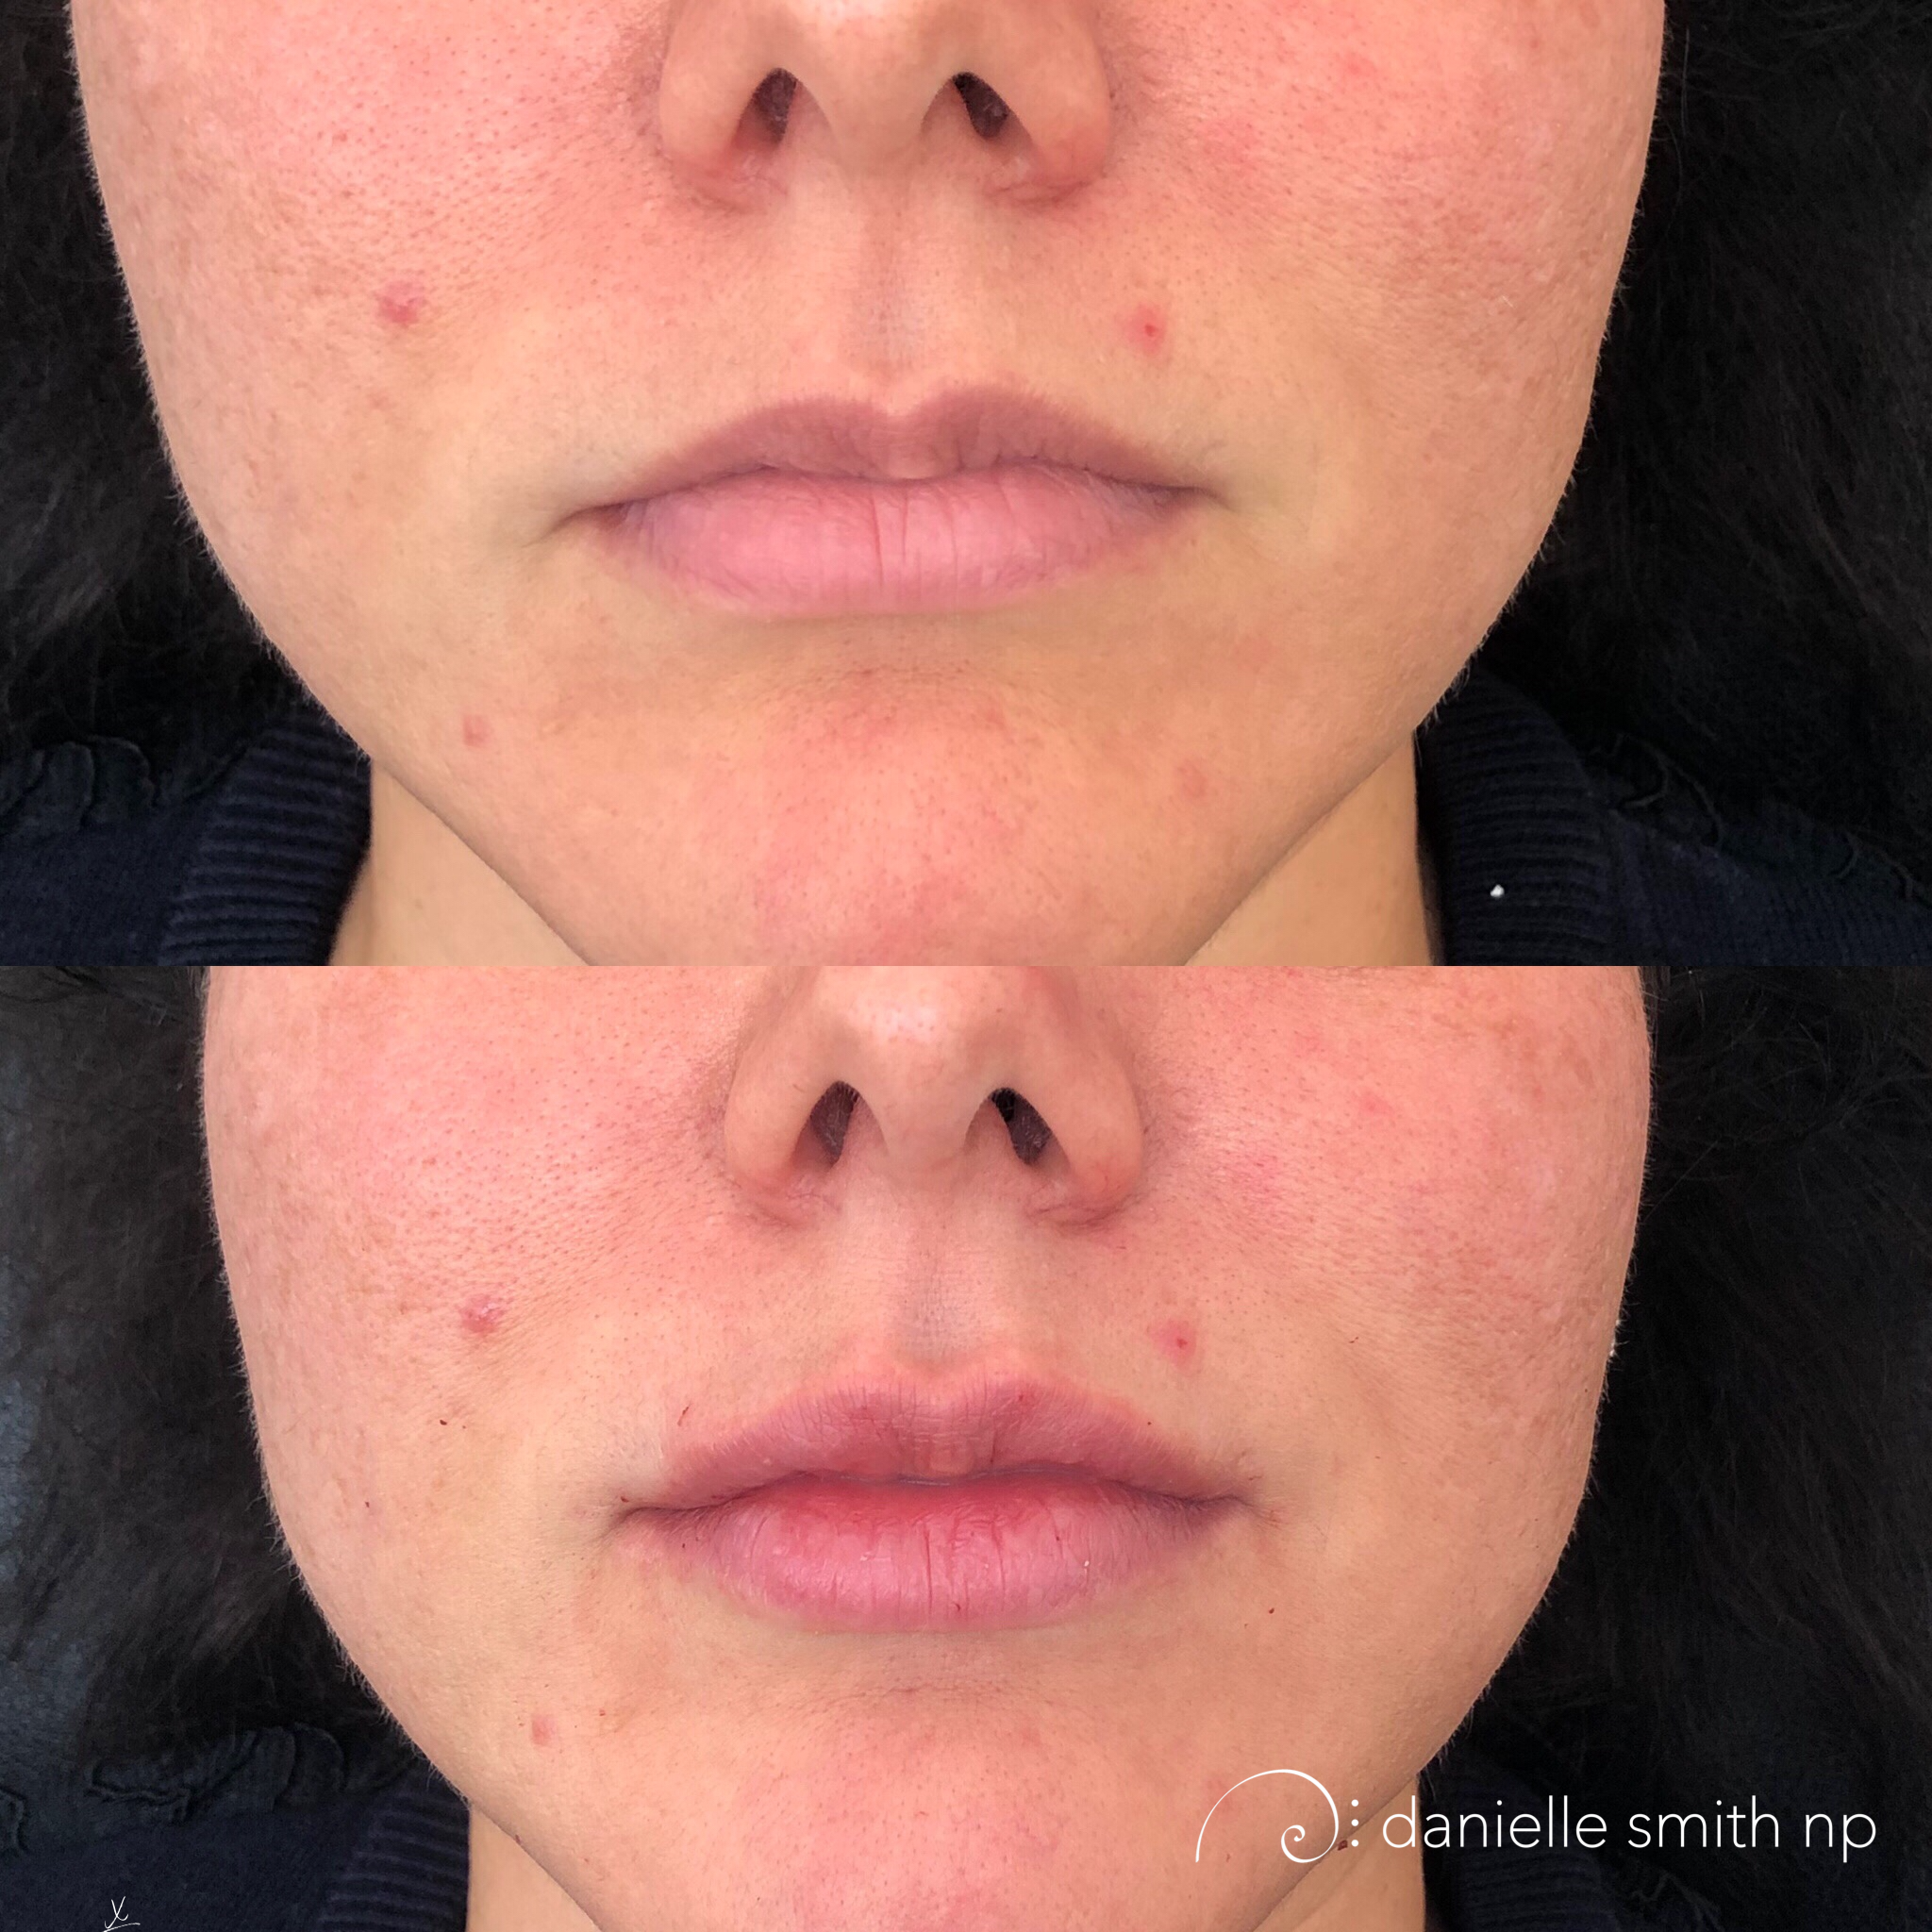 Danielle Smith NP injected 1 syringe of Juvederm to create fuller and more balanced lips. The patient wanted to add volume to her top lip, but we needed to balance out the bottom lip laterally to support the fuller top lip. If you don't balance out the bottom as well, you can loose the profile ratio, which causes the top lip to protrude over the bottom from a side angle.